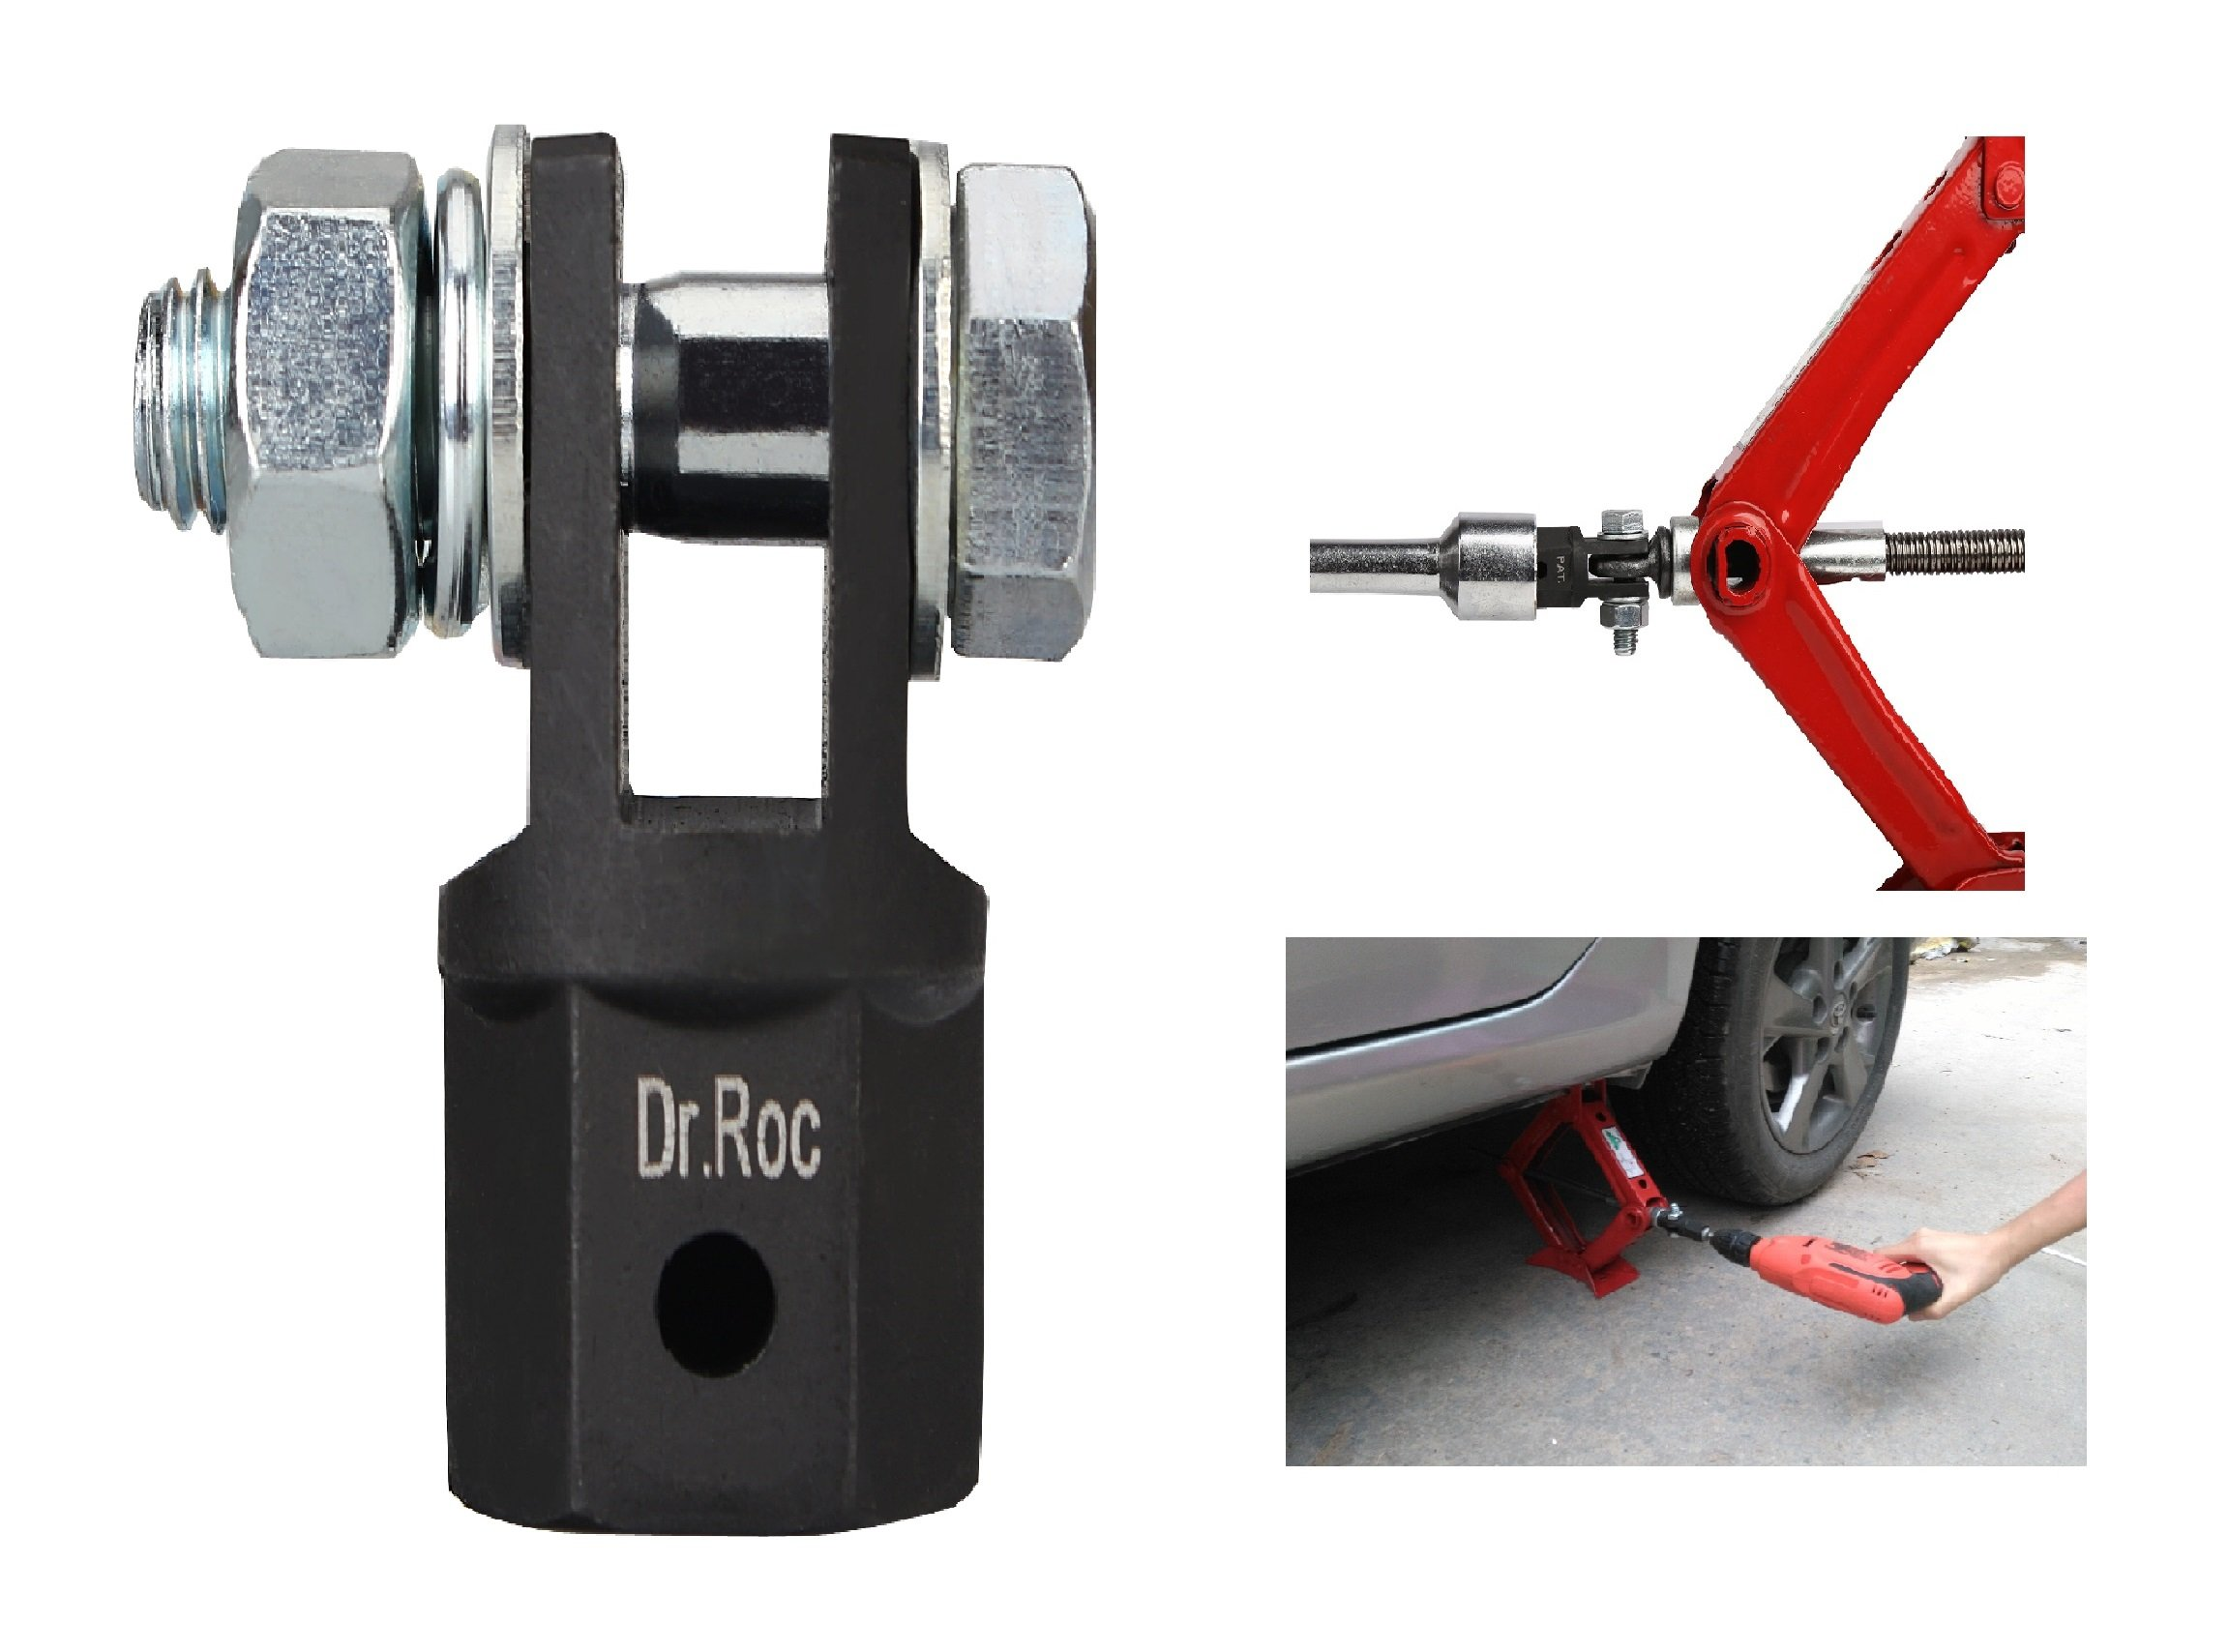 Dr.Roc Scissor Jack Adapter for 1/2 Inch Drive Impact Wrench or 13/16 Inch Lug Wrench or Power Drills, Scissor Jack Drill Adapter for Impact Drills Socket Automotive Jack RV Trailer Leveling Jack